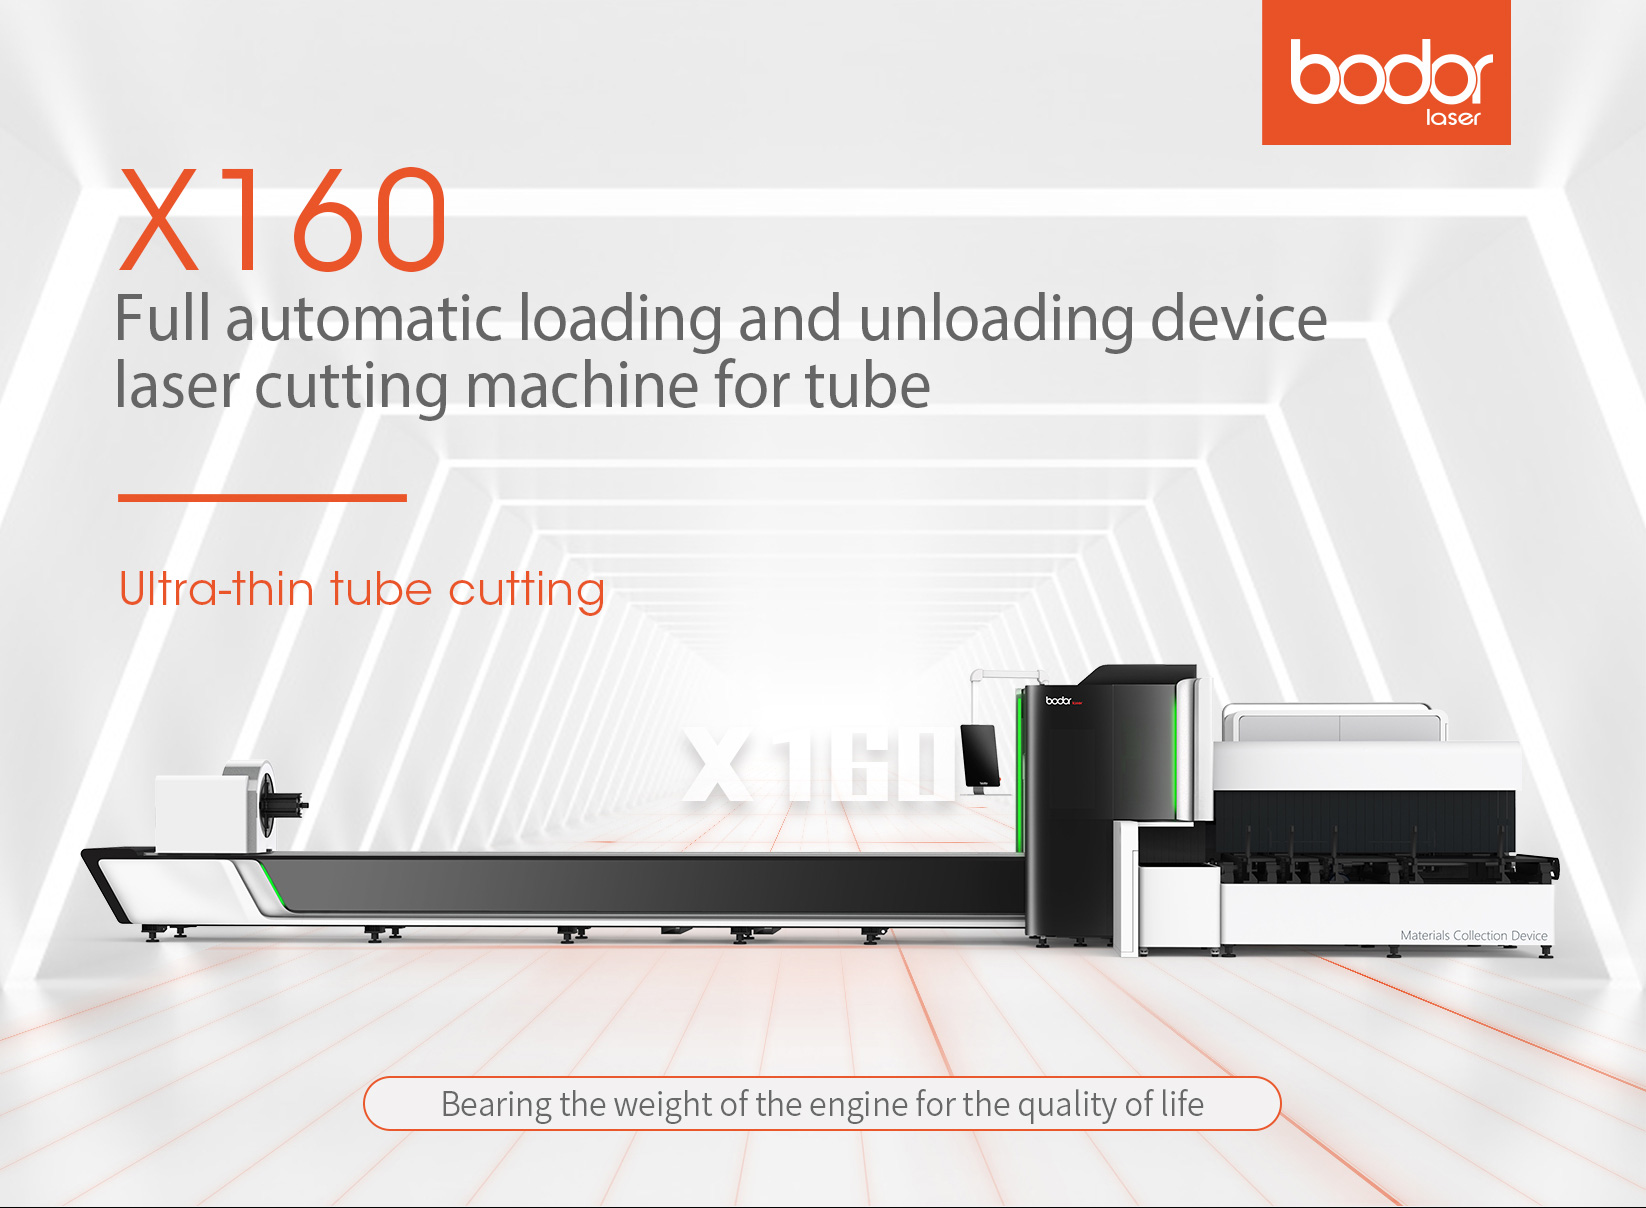 1000W metal tube laser cutting machine Bodor IPG fiber laser cutting machine with CE ISO certificate cutter